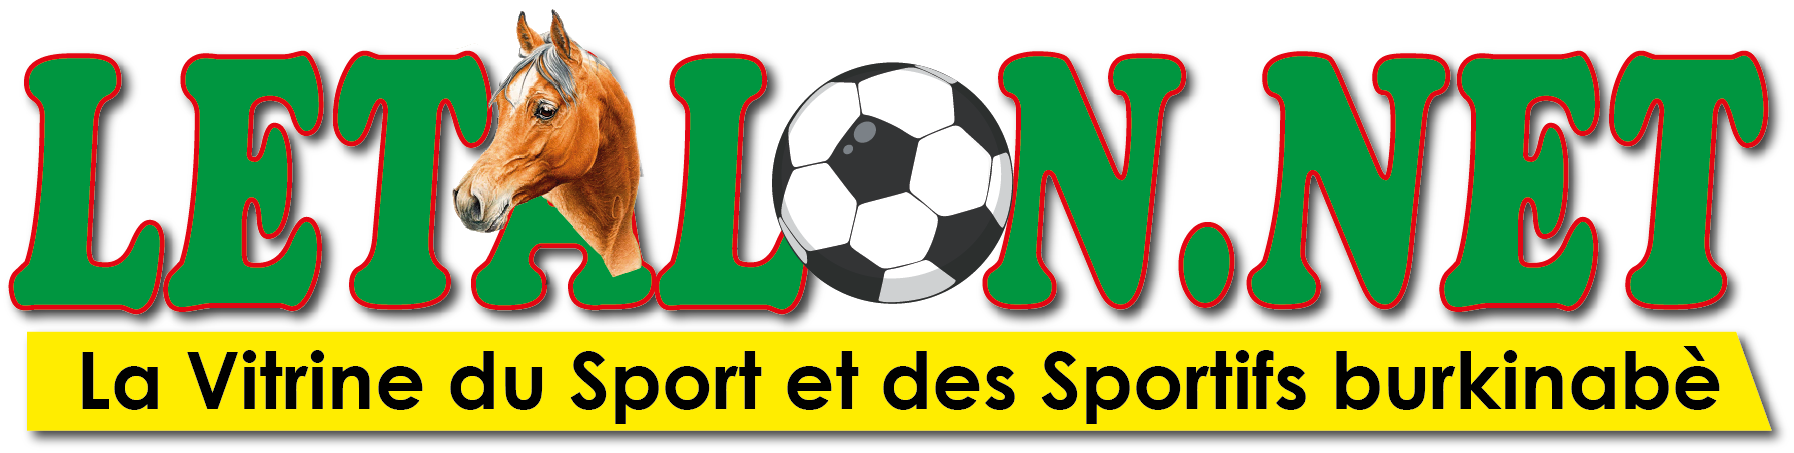 Letalon.net/Sports